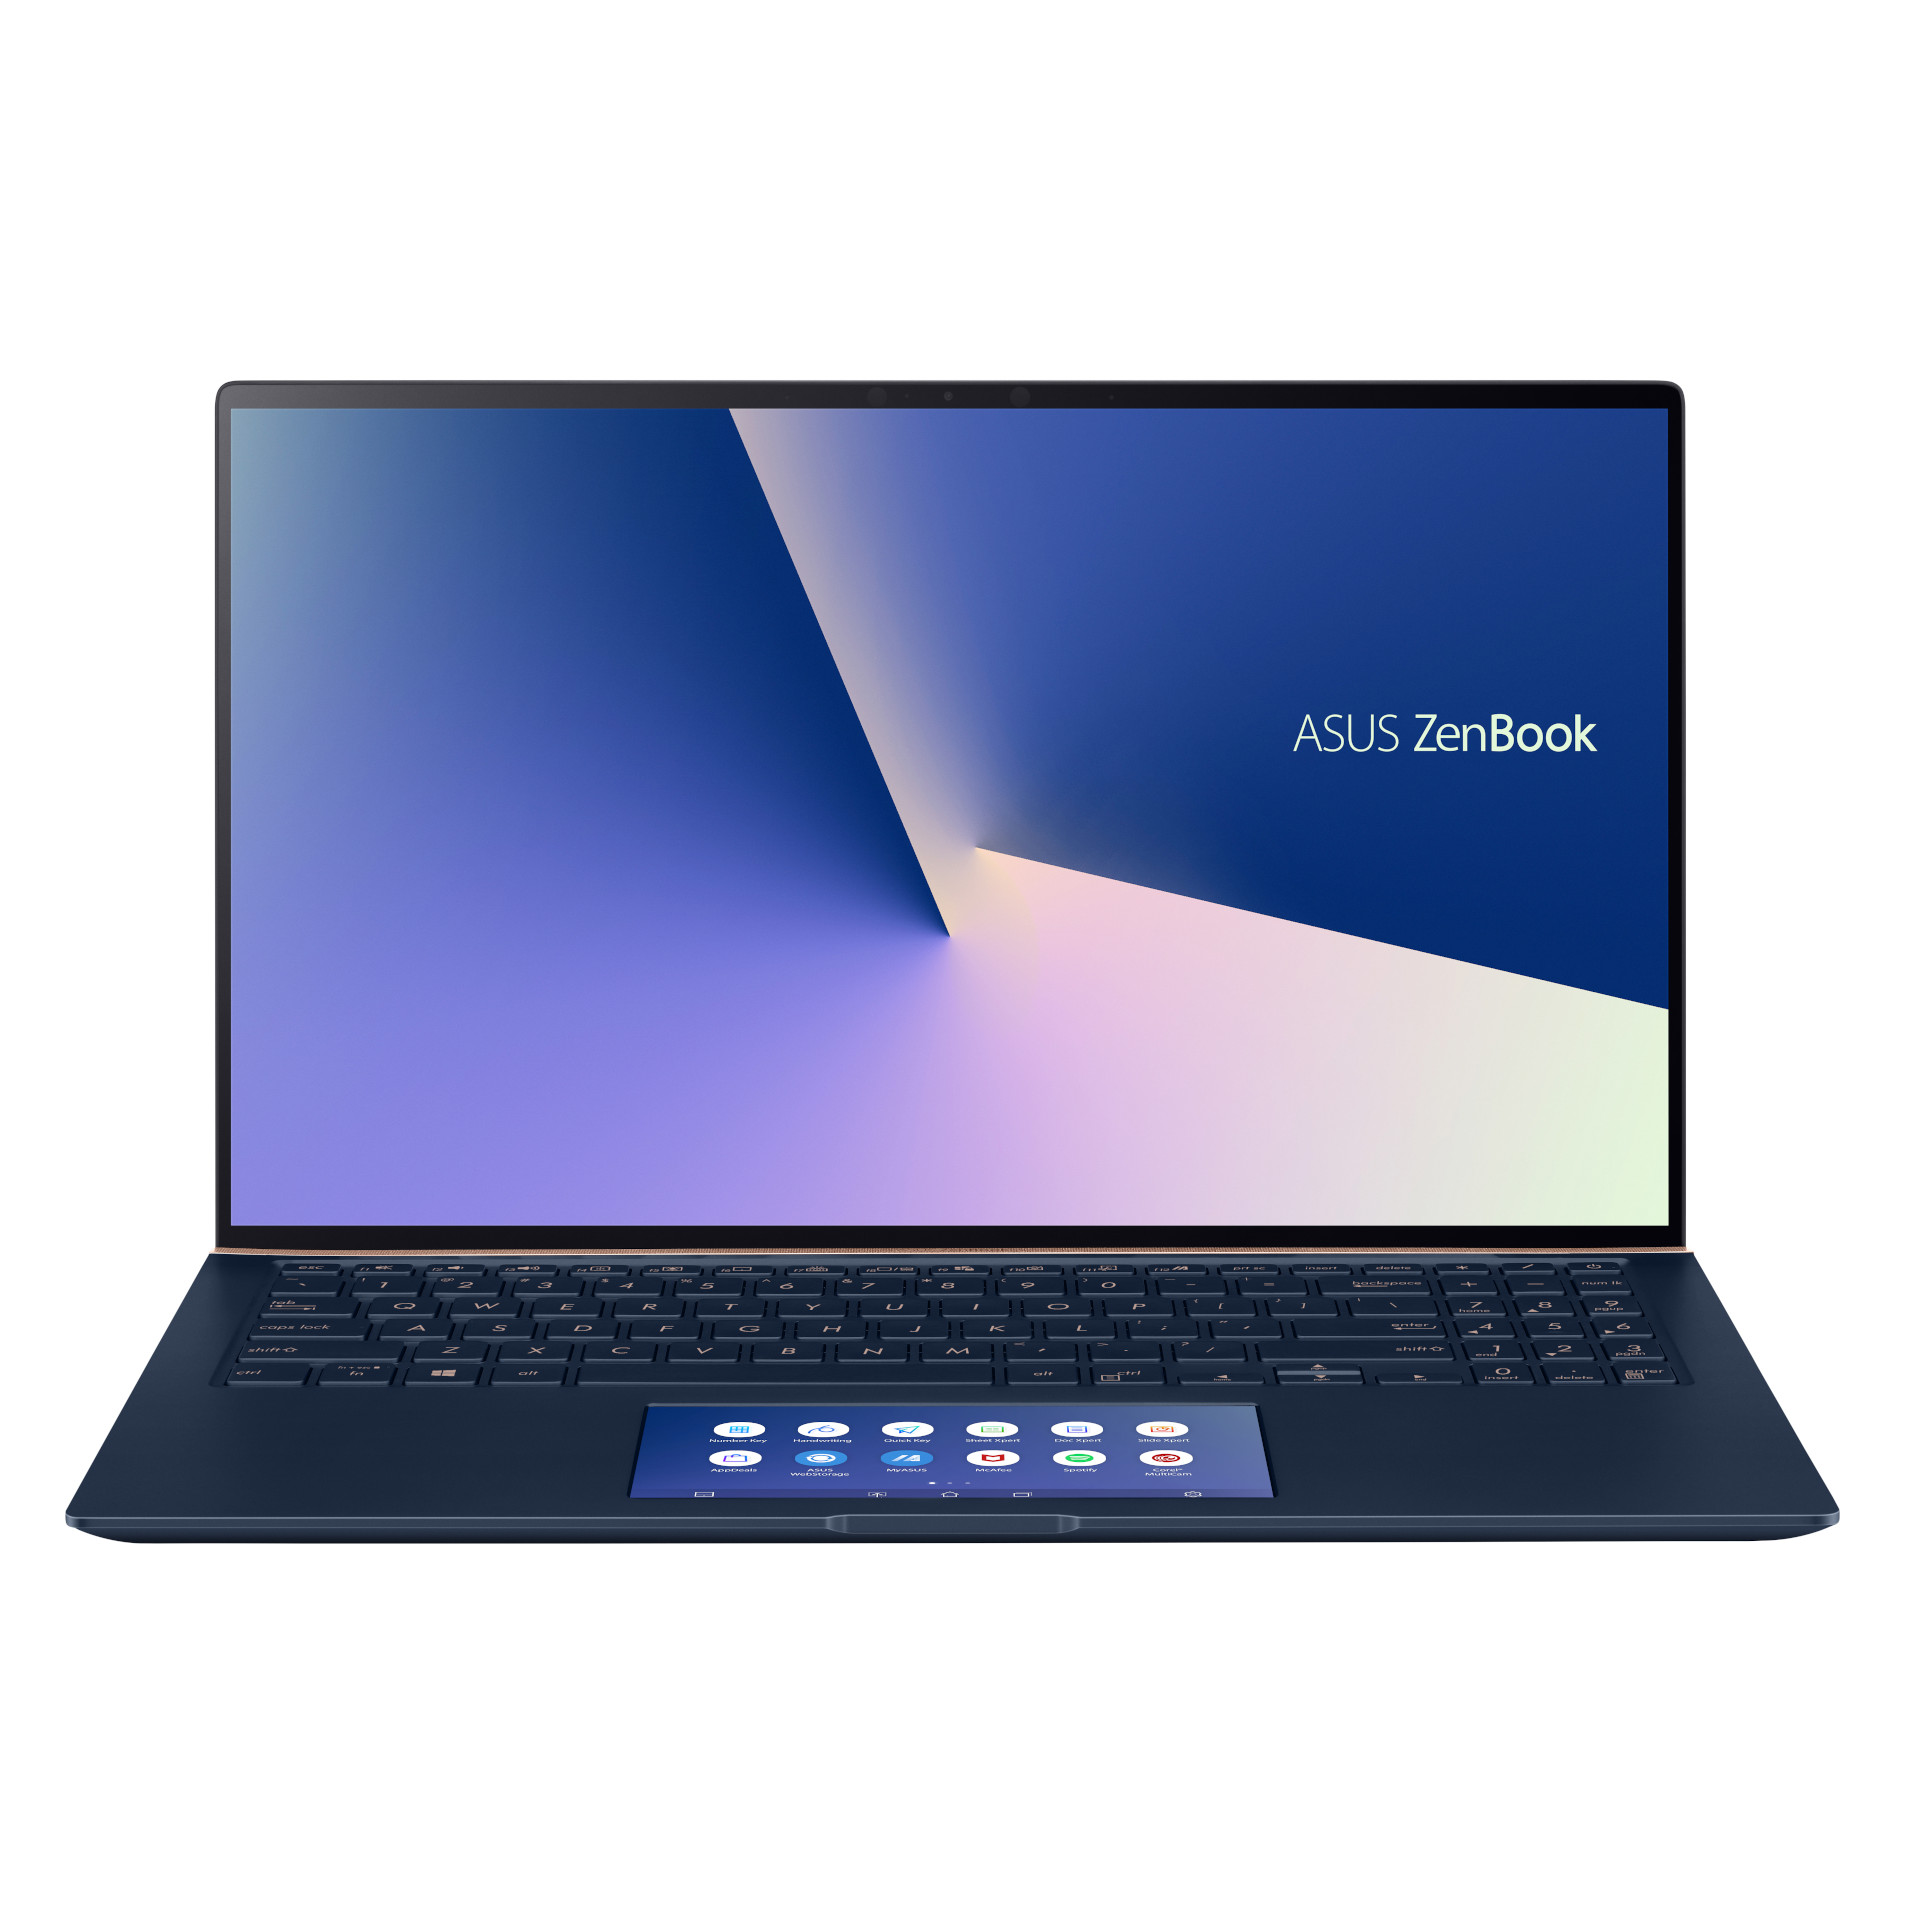 ASUS-UX534-ROYAL-BLUE-01.jpg